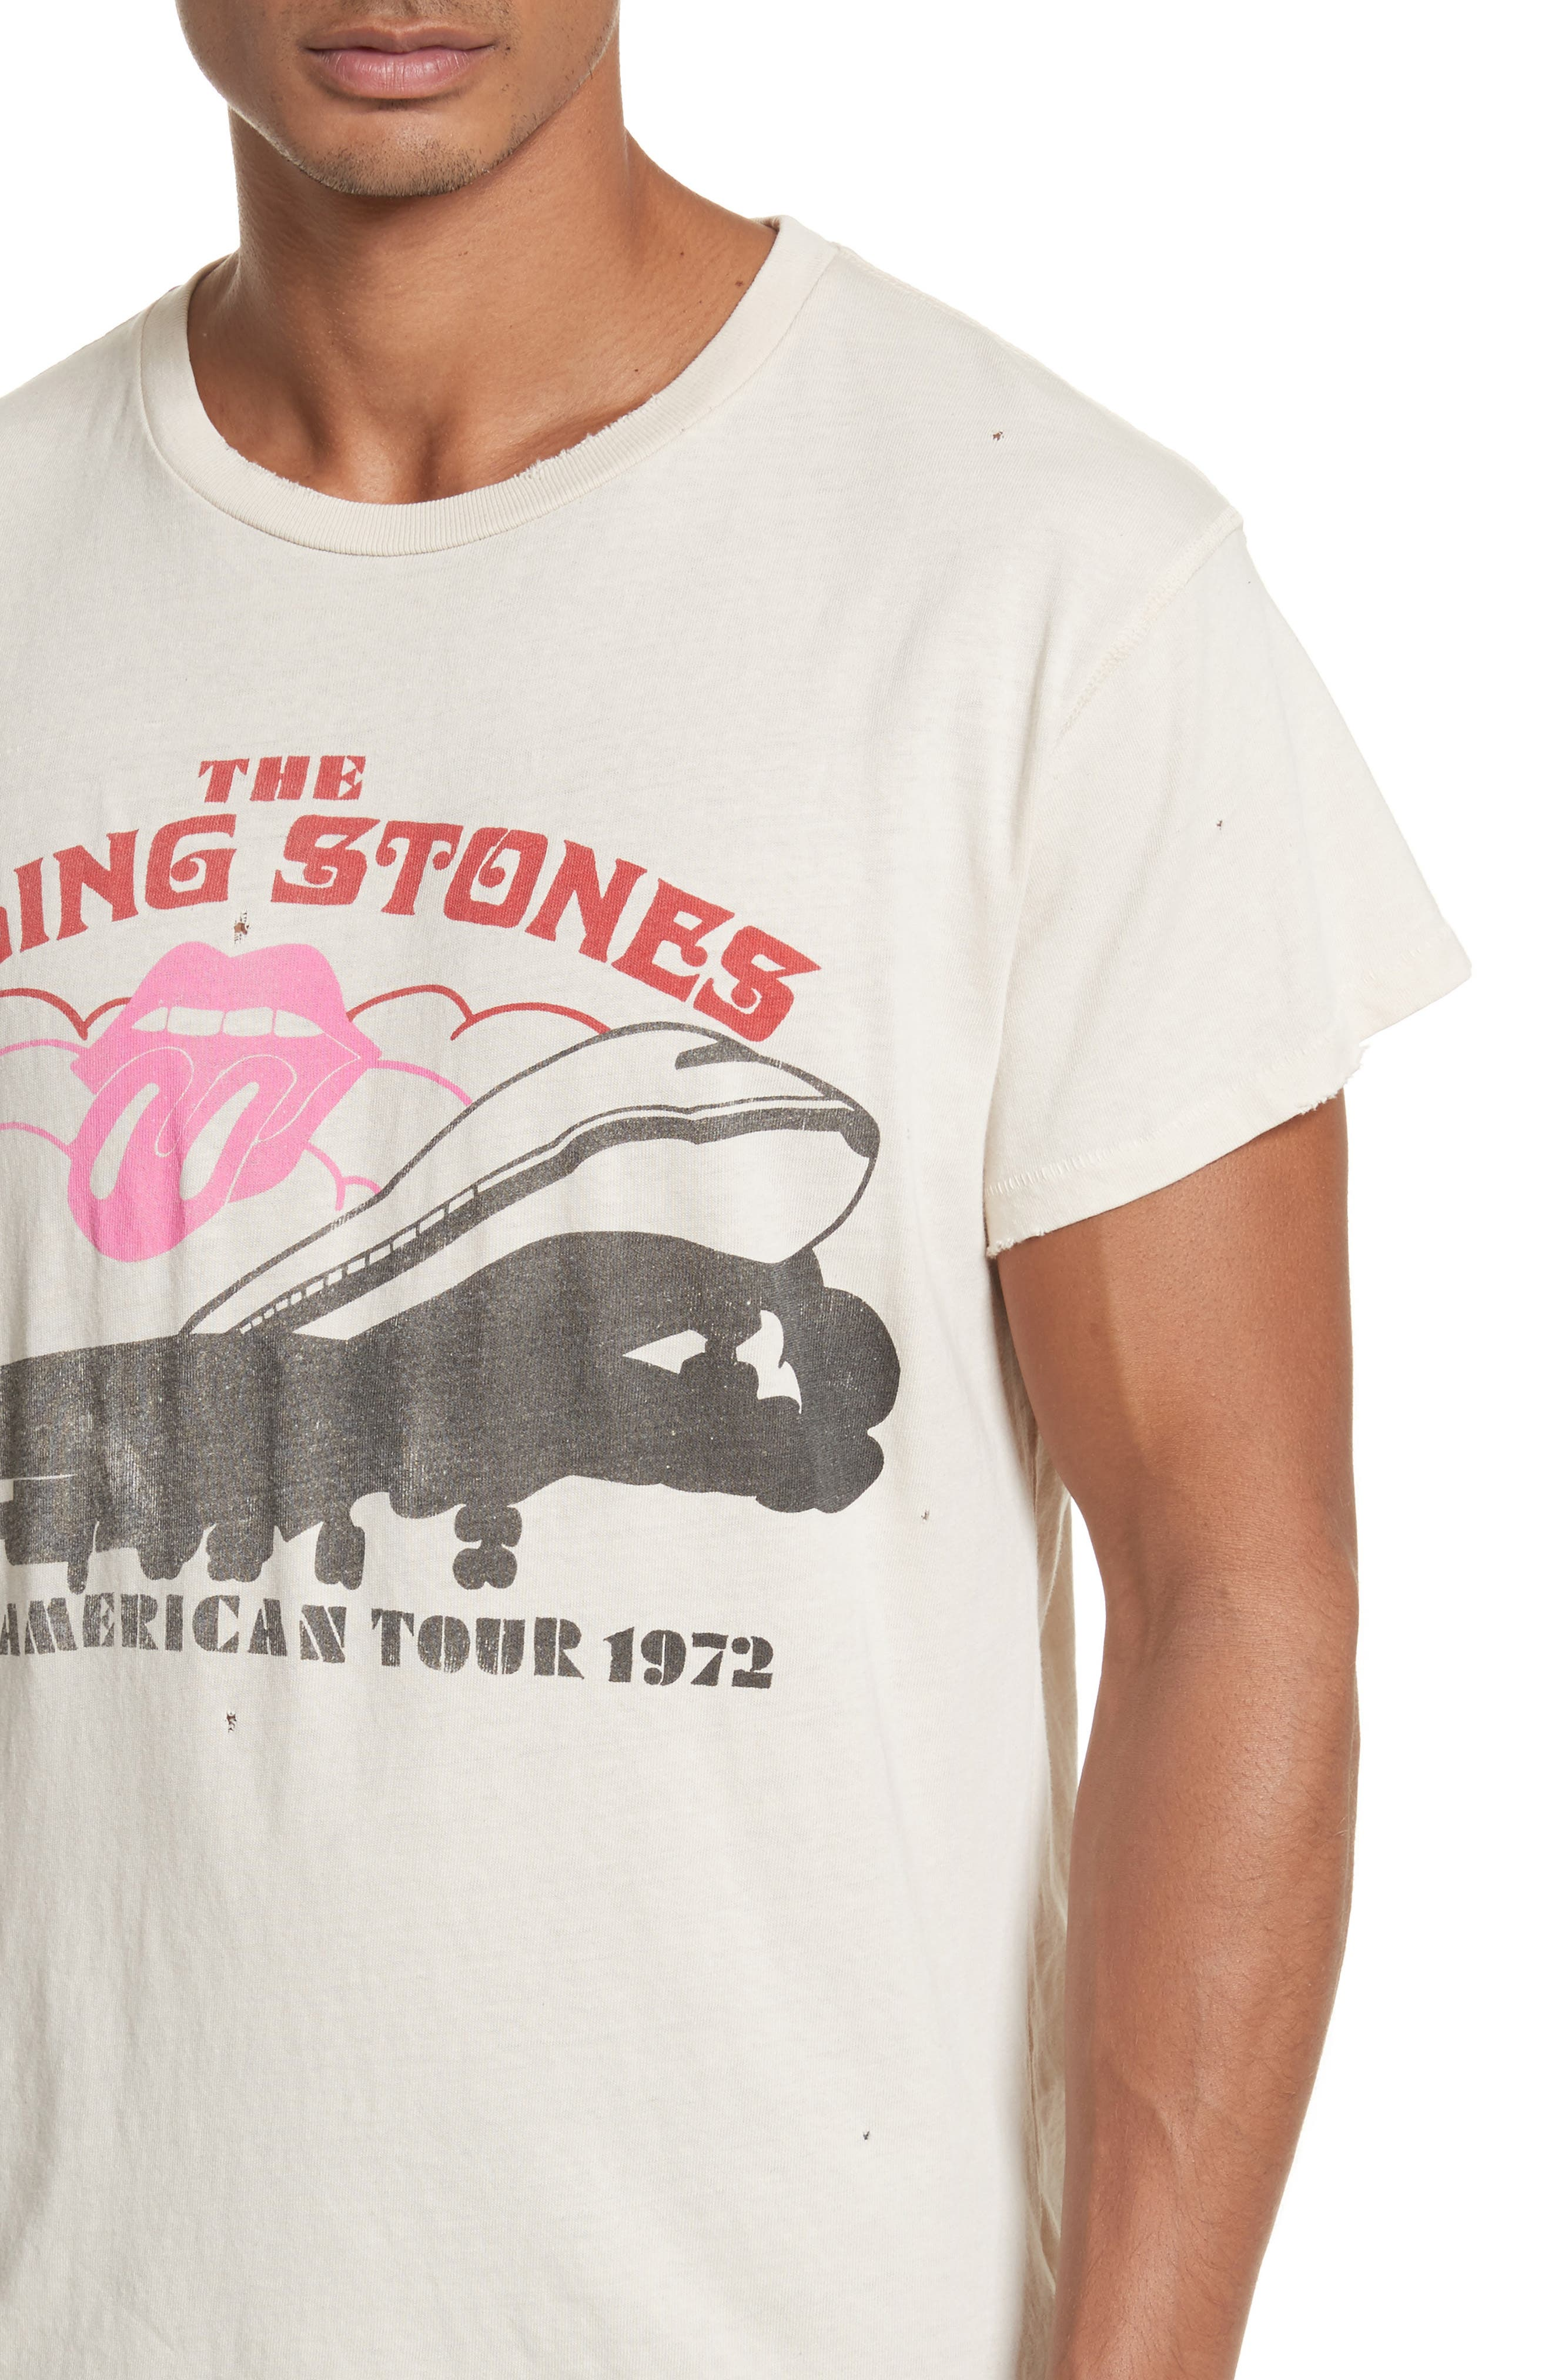 The Rolling Stones North American Tour 1972 Graphic T-Shirt,                             Alternate thumbnail 4, color,                             100